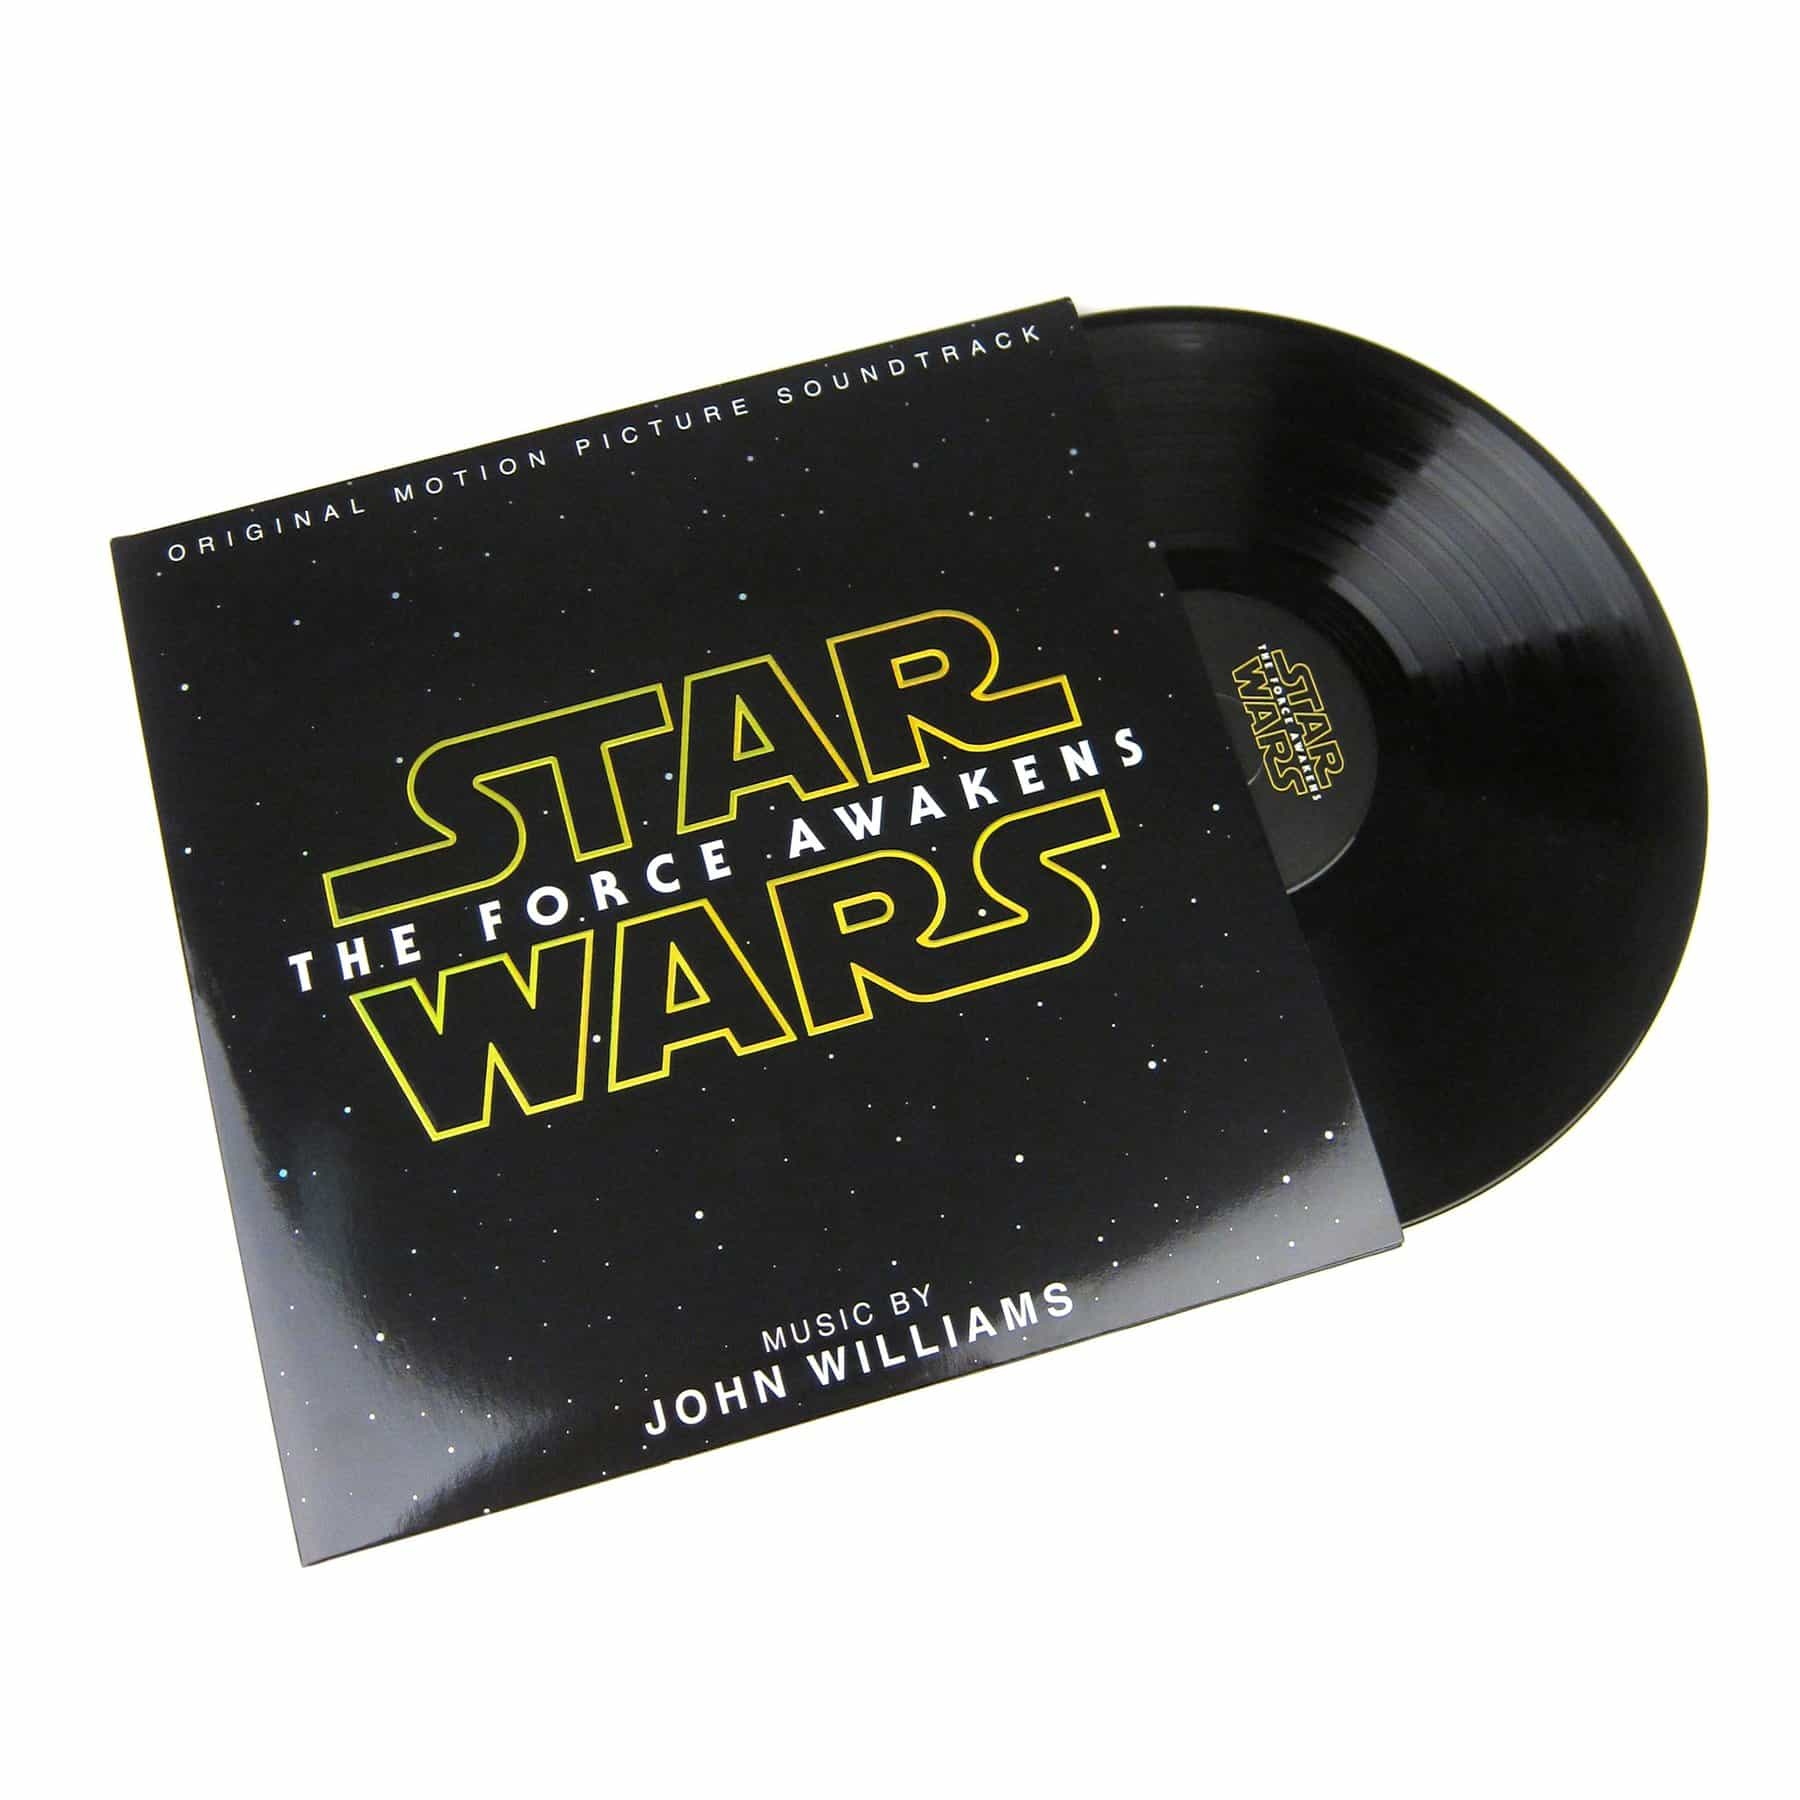 'STAR WARS' VINYL PROJECTS HOLOGRAMS WHILE PLAYING MUSIC